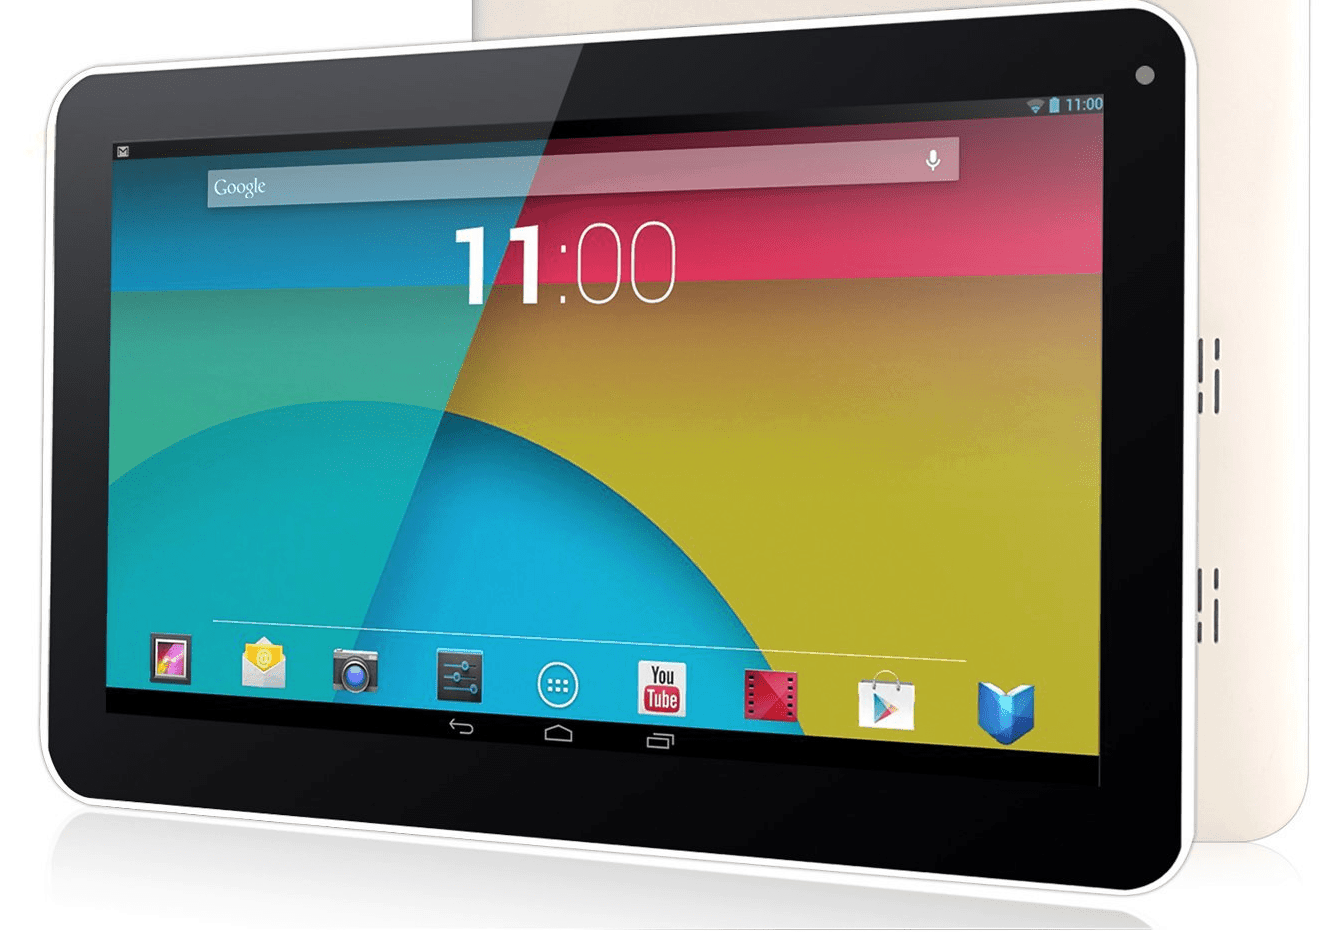 Dragon Touch A1X Plus 10.1″ Quad Core Tablet PC Review